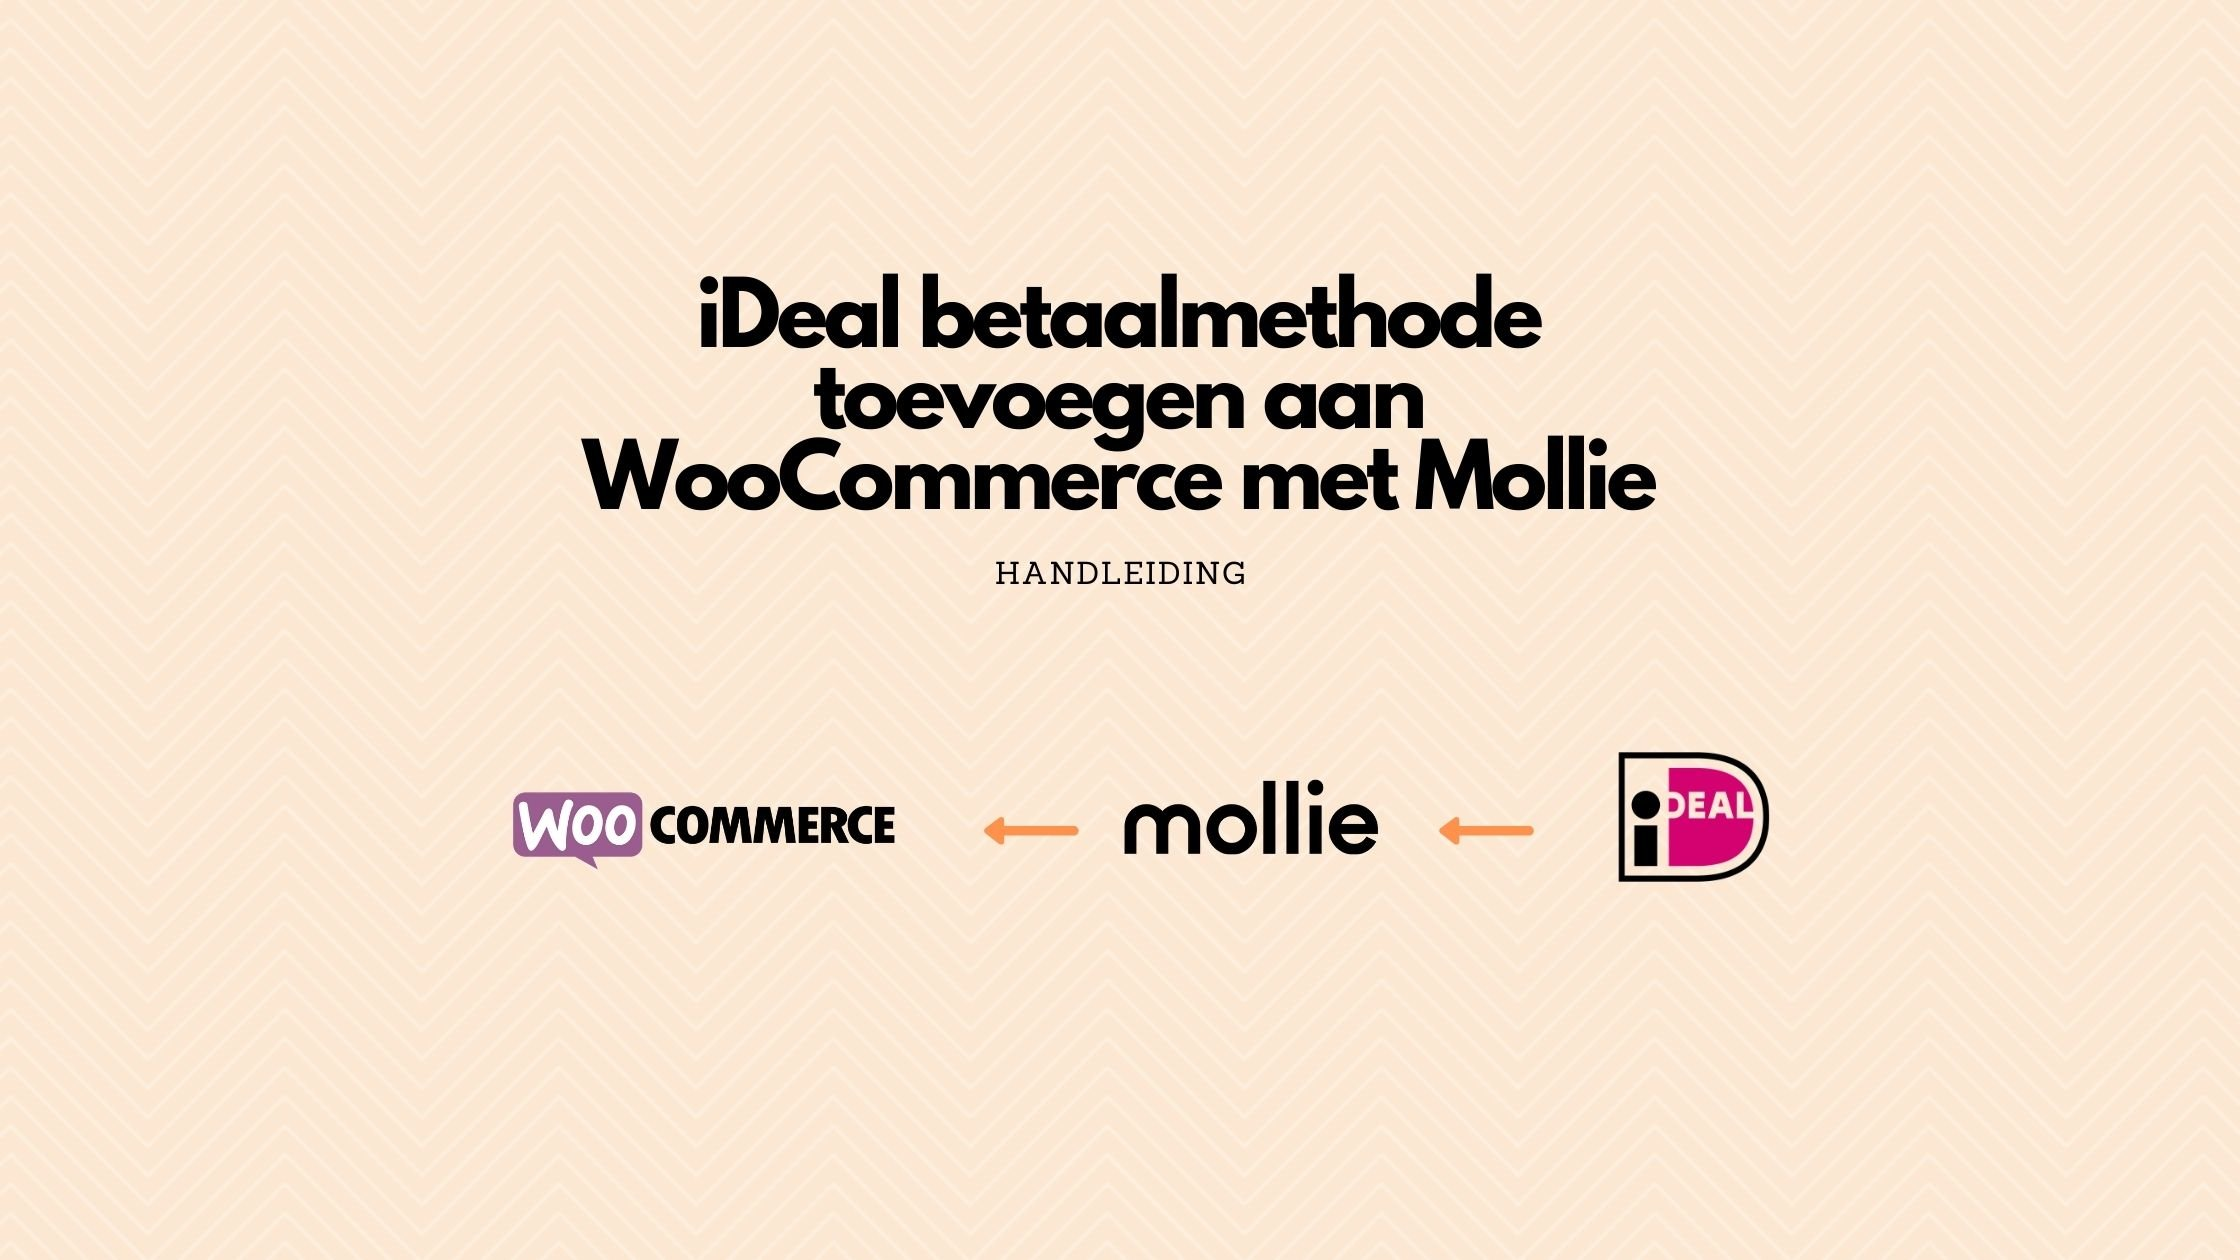 Ideal betaalmethode toevoegen aan WooCommerce WordPress Website